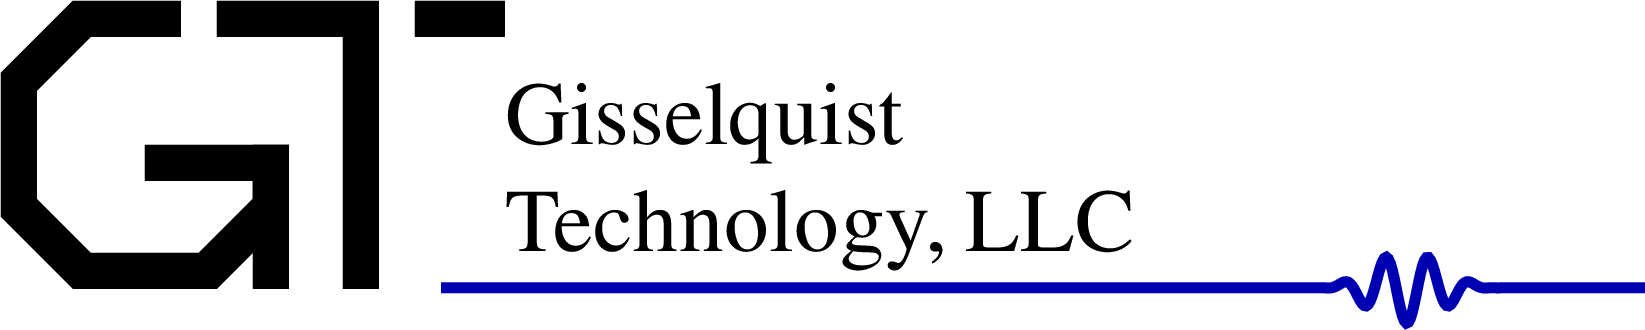 Gisselquist Technology, LLC